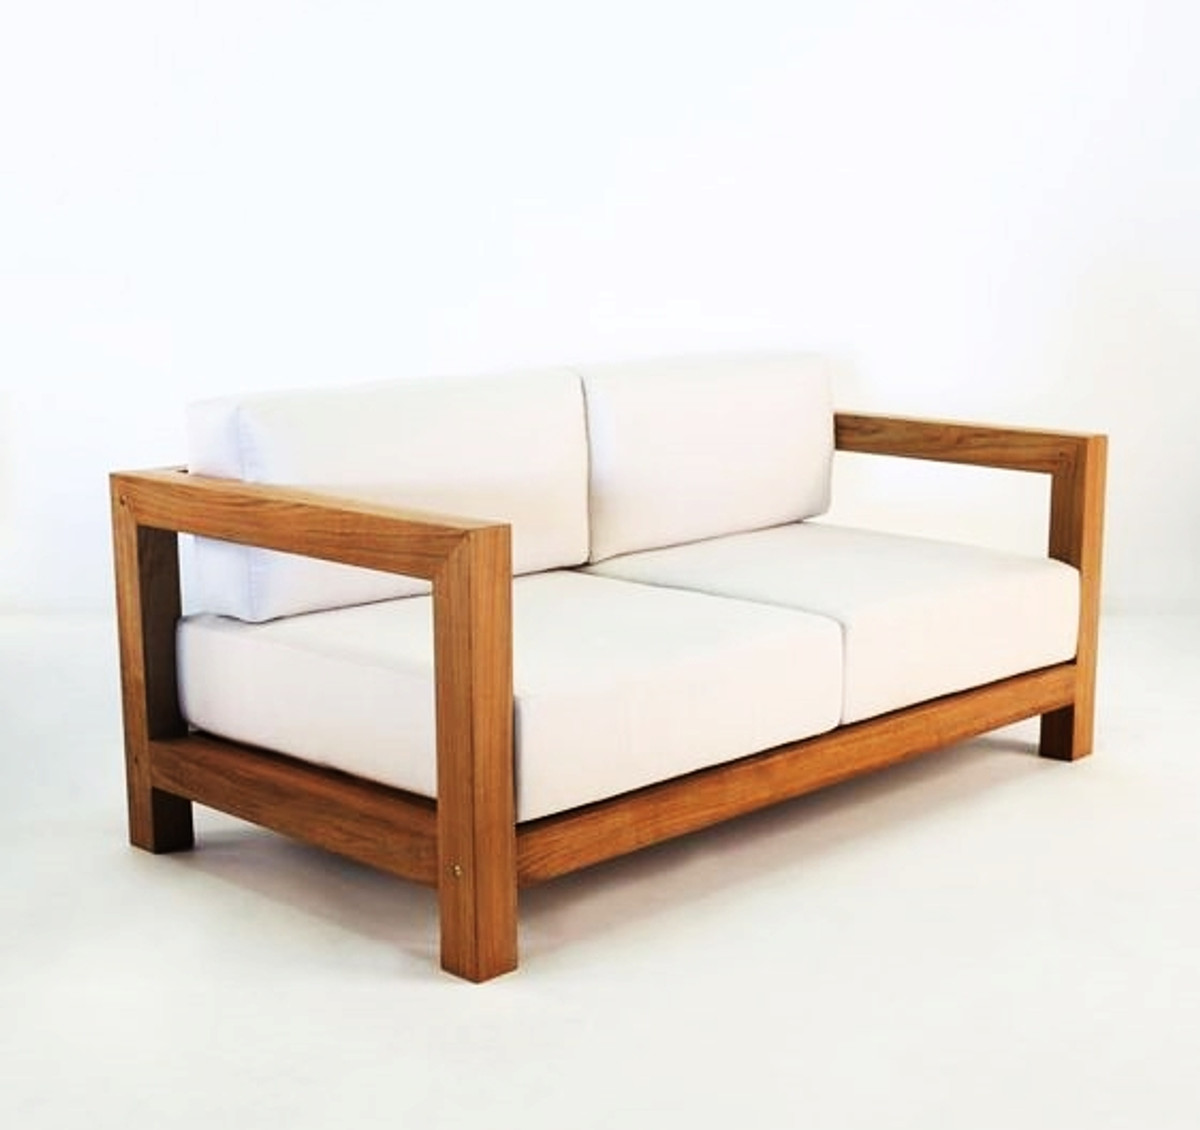 Lounge sofa garten  Solid wood lounge and catering furniture for outdoor and indoor use